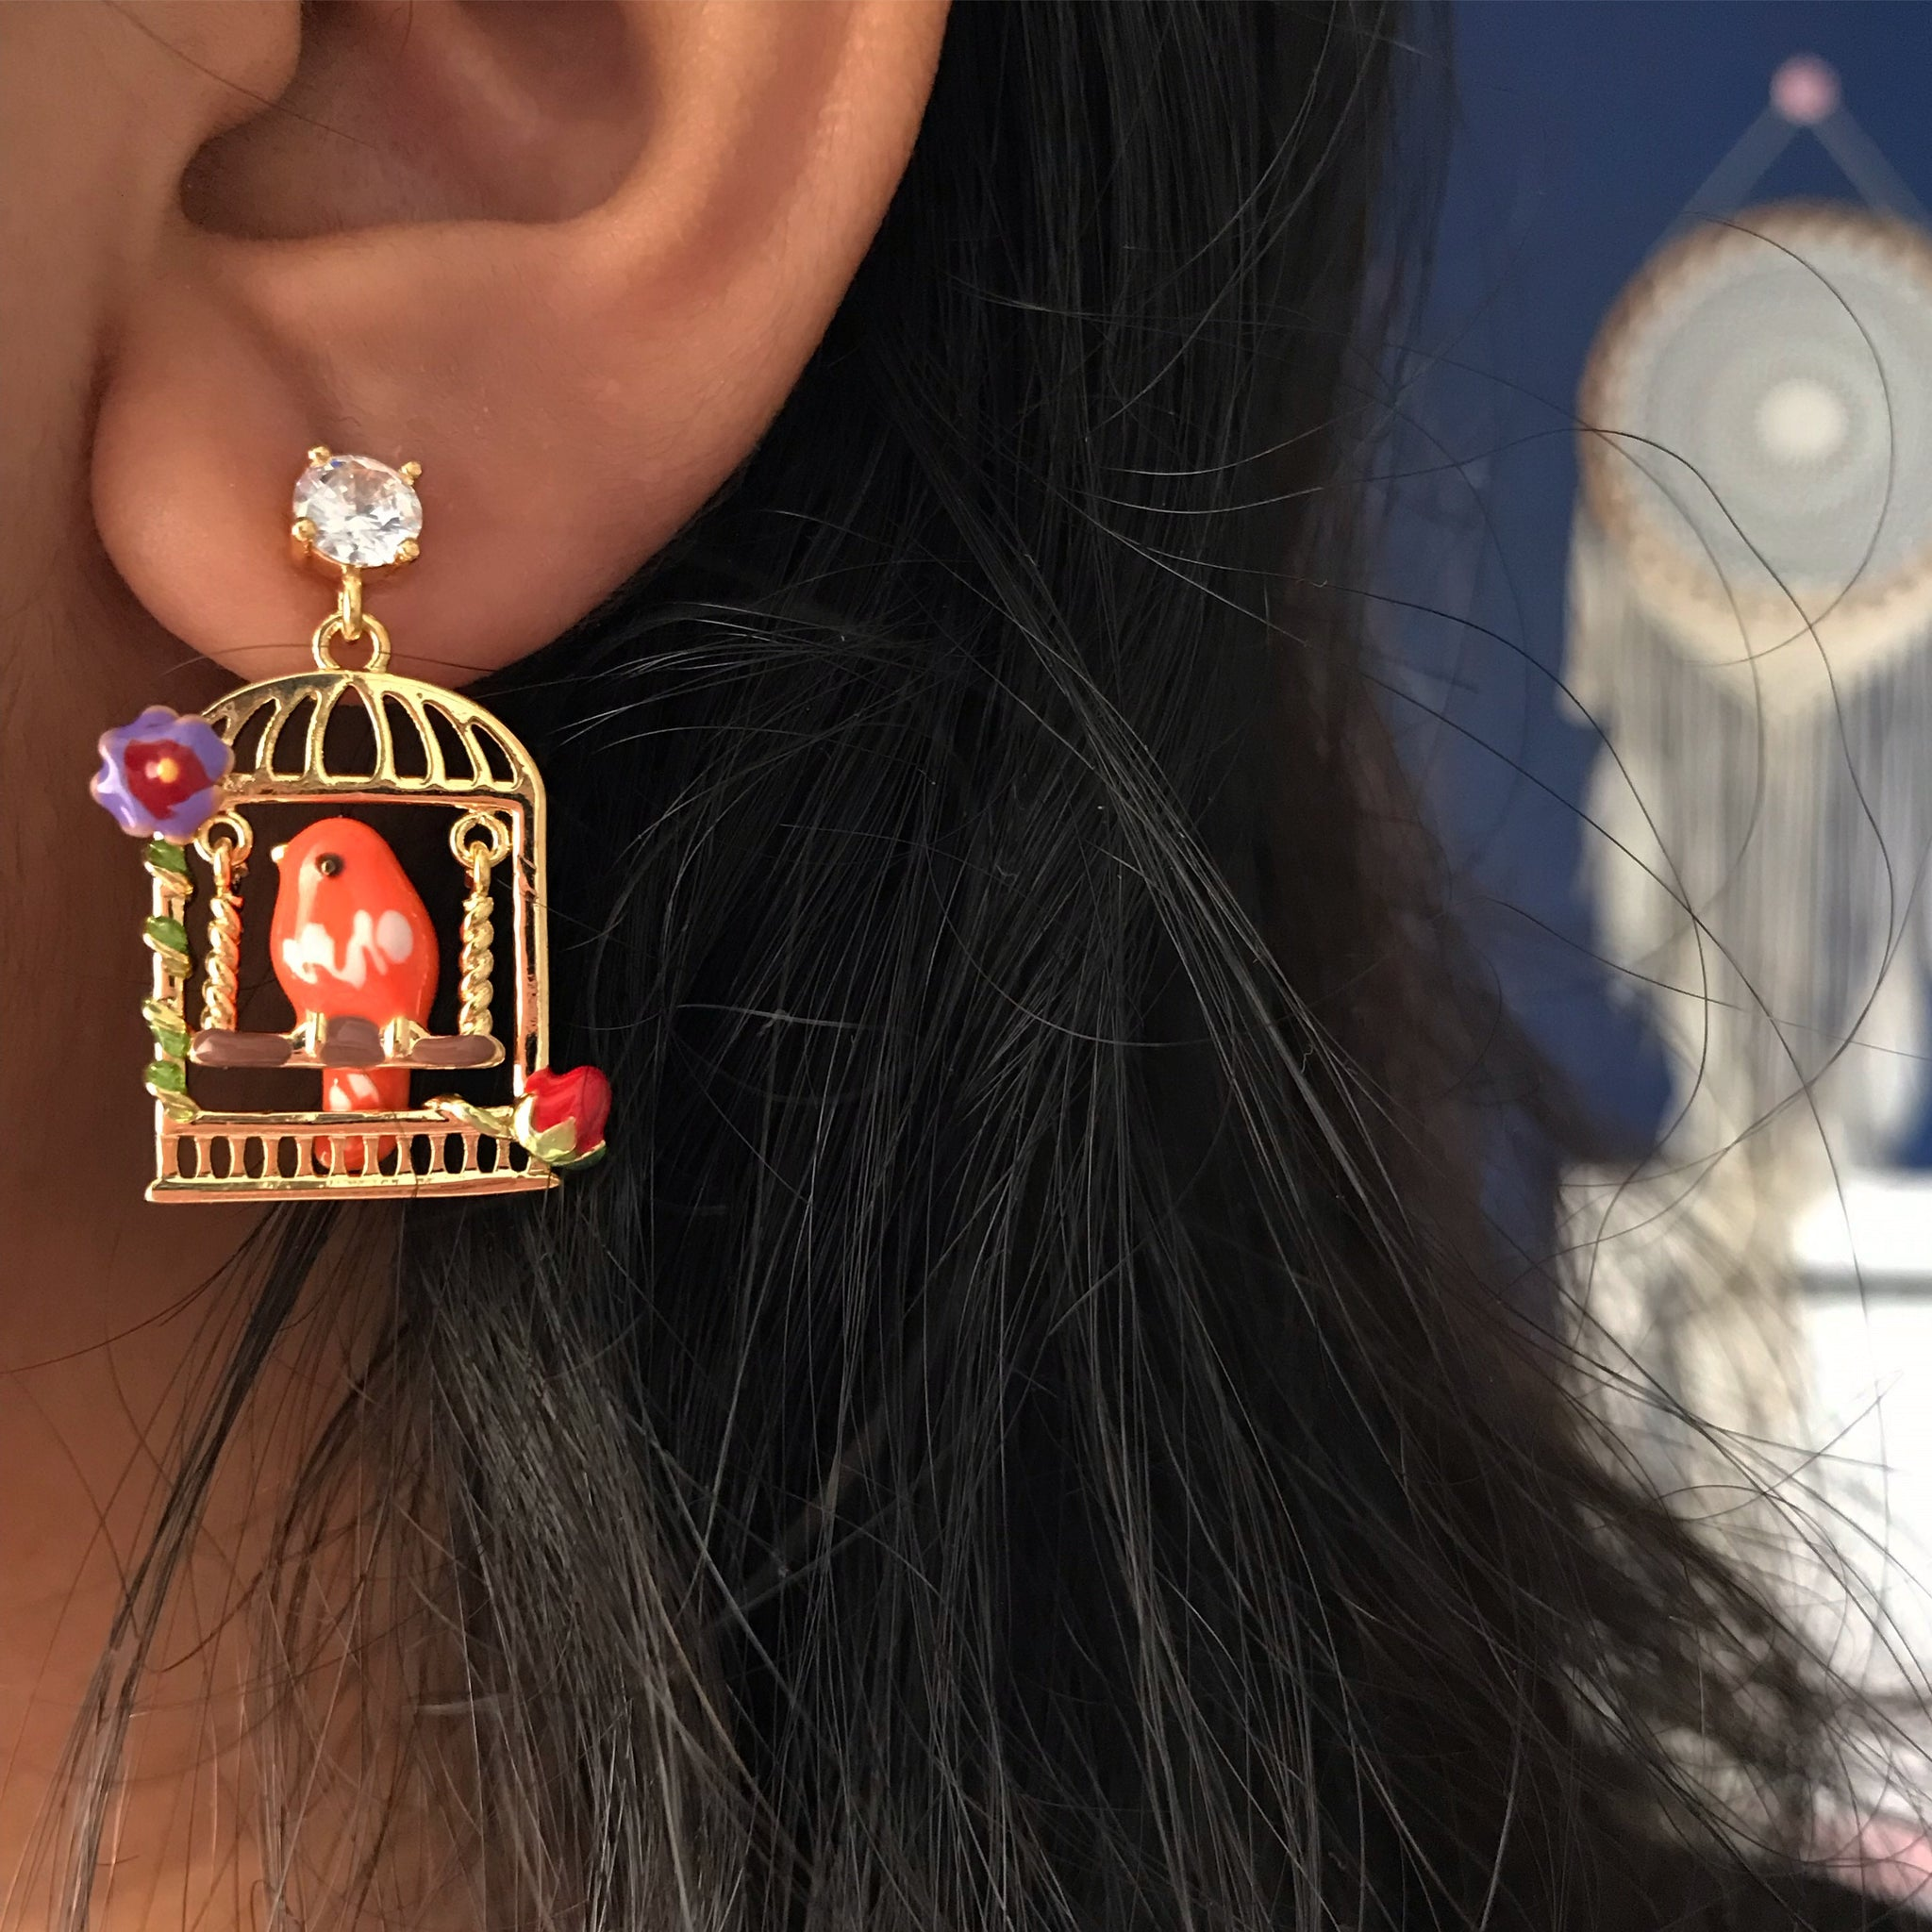 ORANGE BIRD CAGE EARRINGS